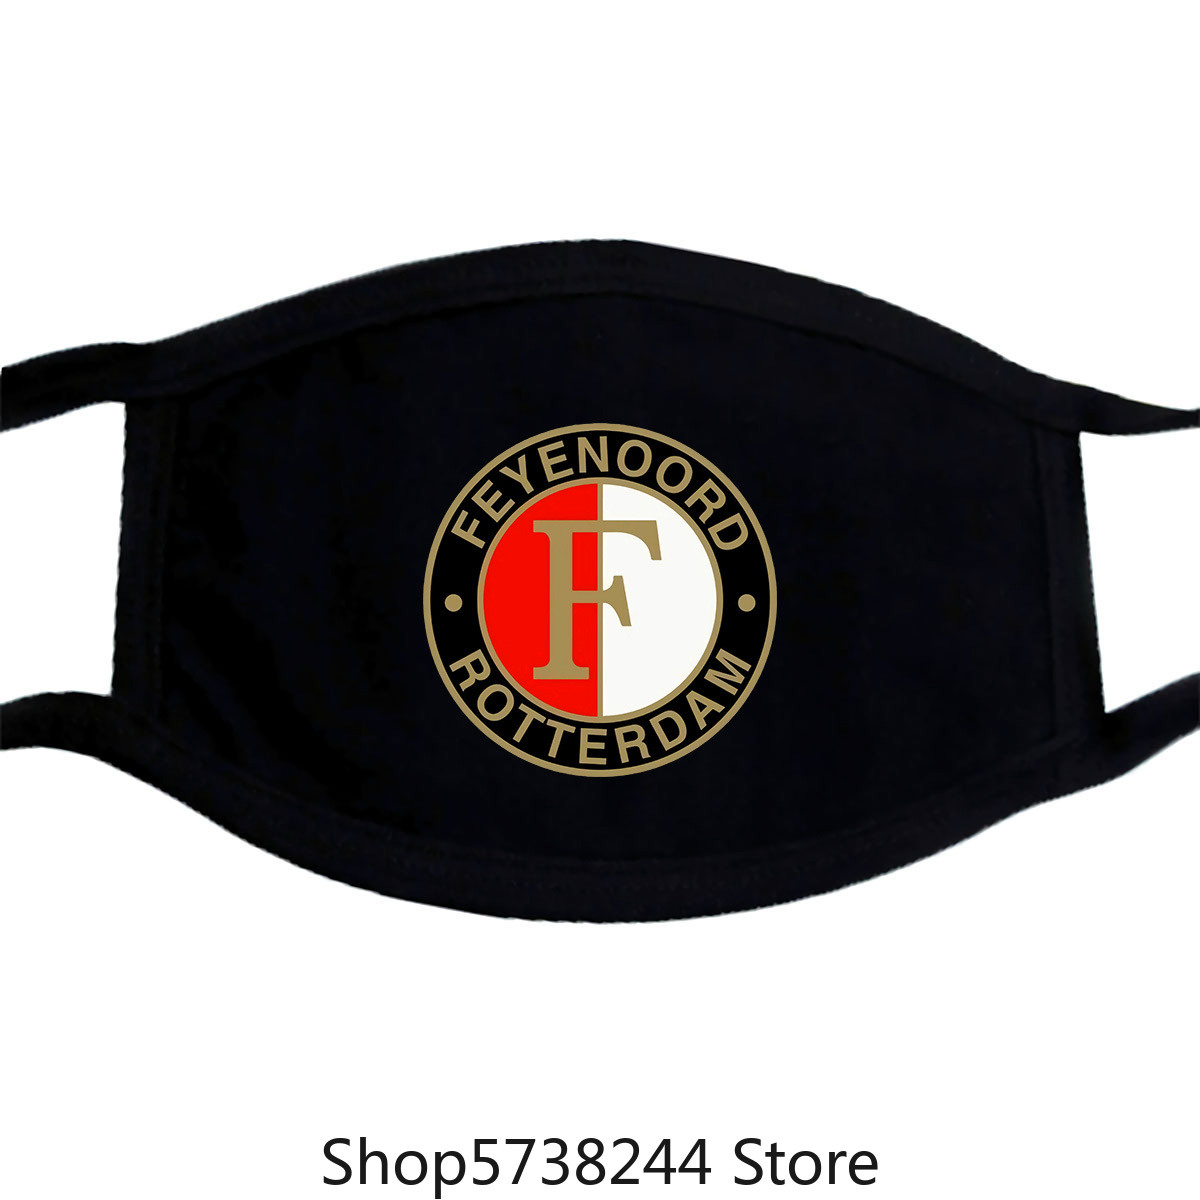 Feyenoord Rotterdam Netherlands Eredivisie Soccer Football Black Mask New S Washable Reusable Mask With